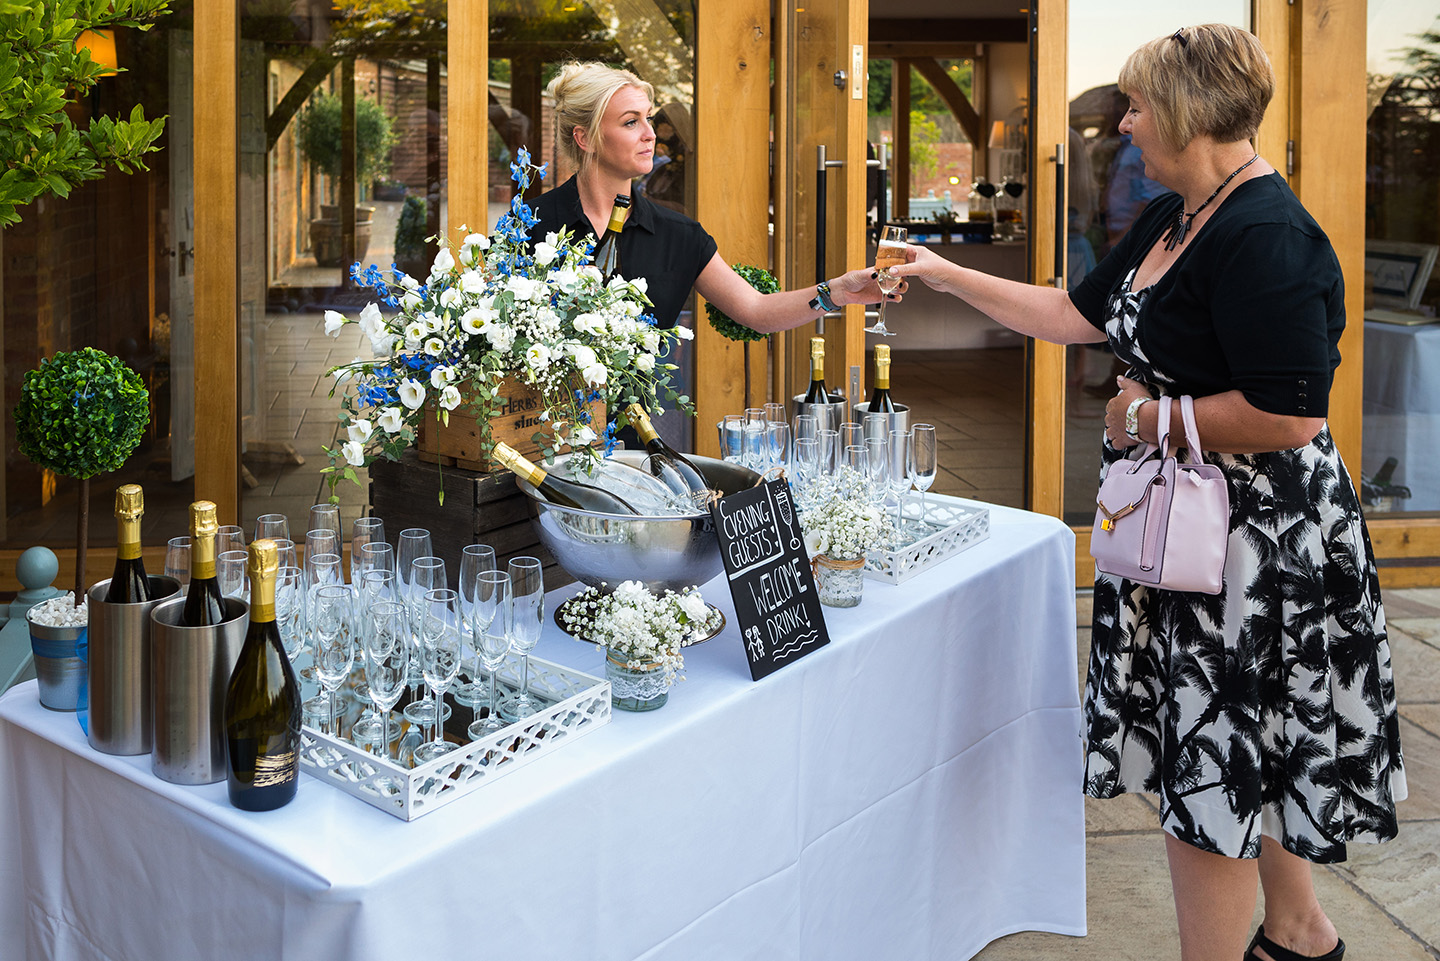 Evening guests were also greeted with a friendly face and welcome drinks from our Galloping Gourmet team